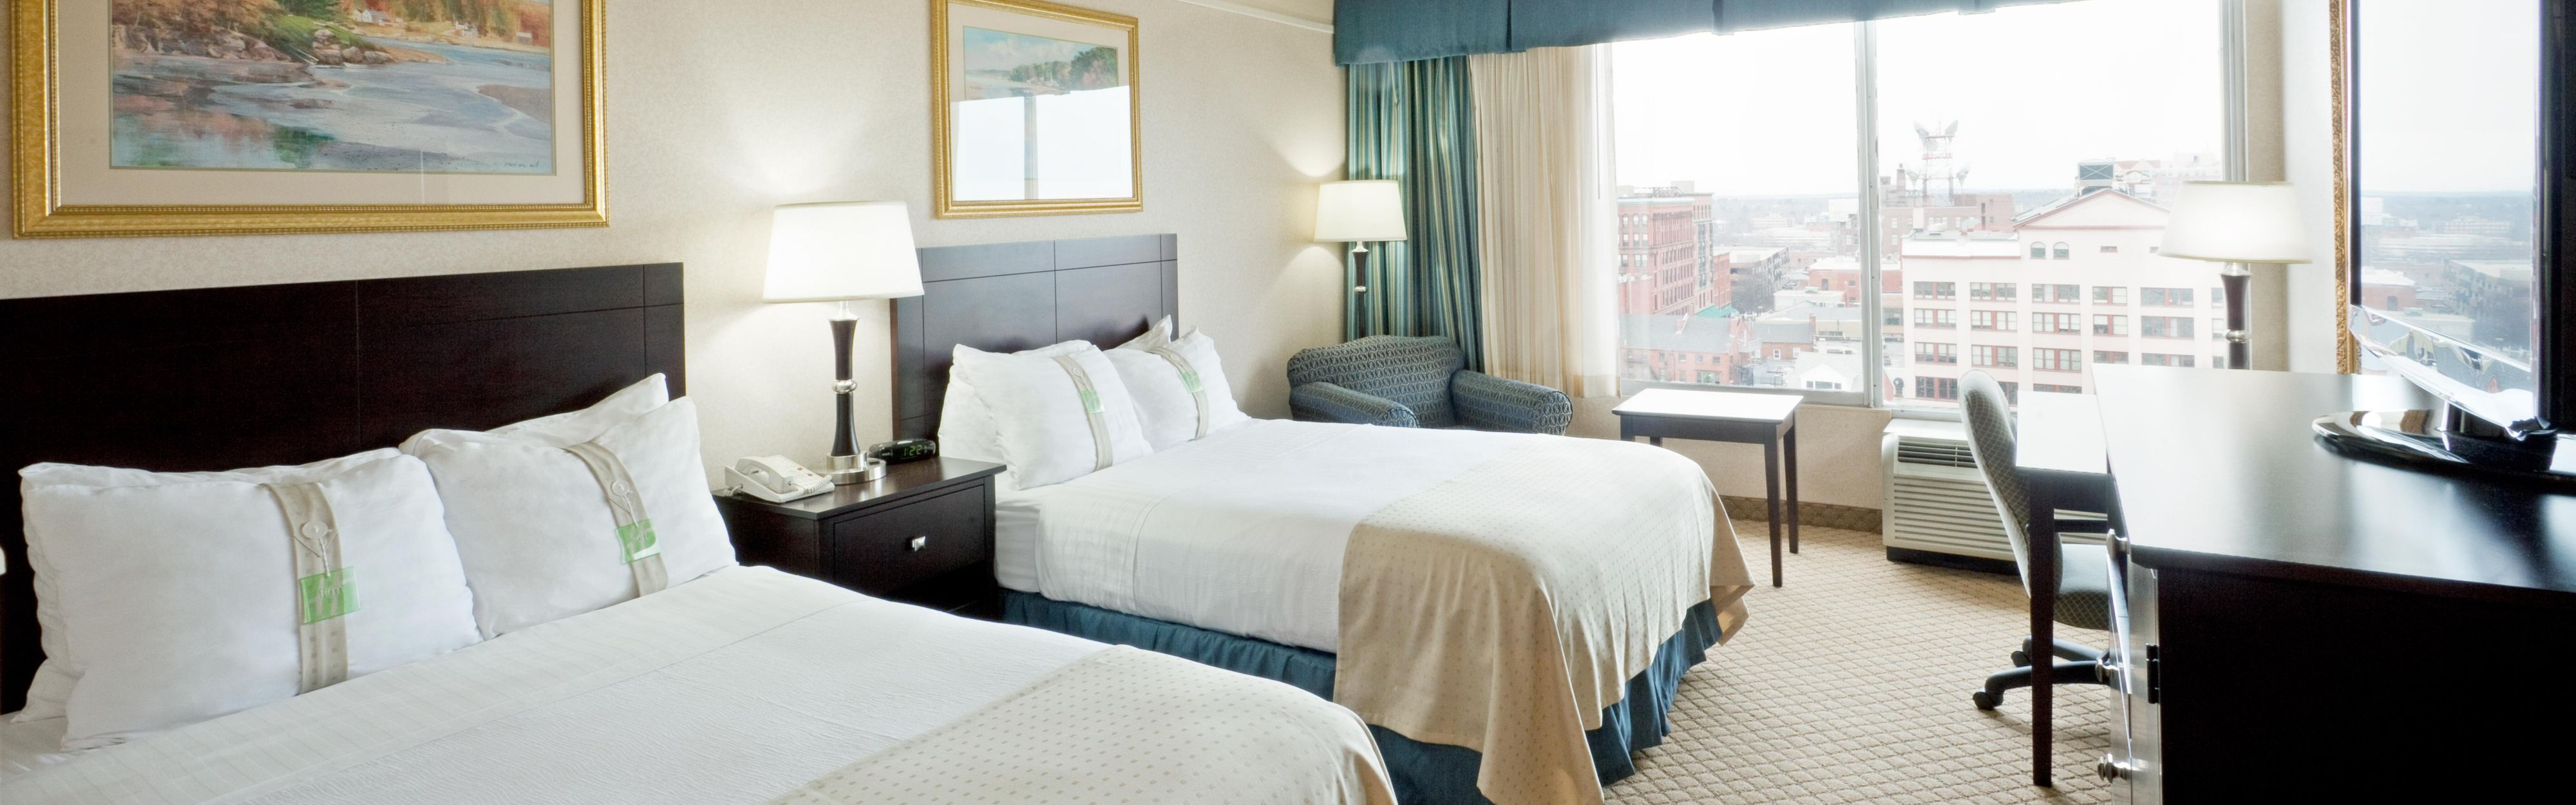 ... Two Double Beds With Views Of Casco Bay Or City Skylines.